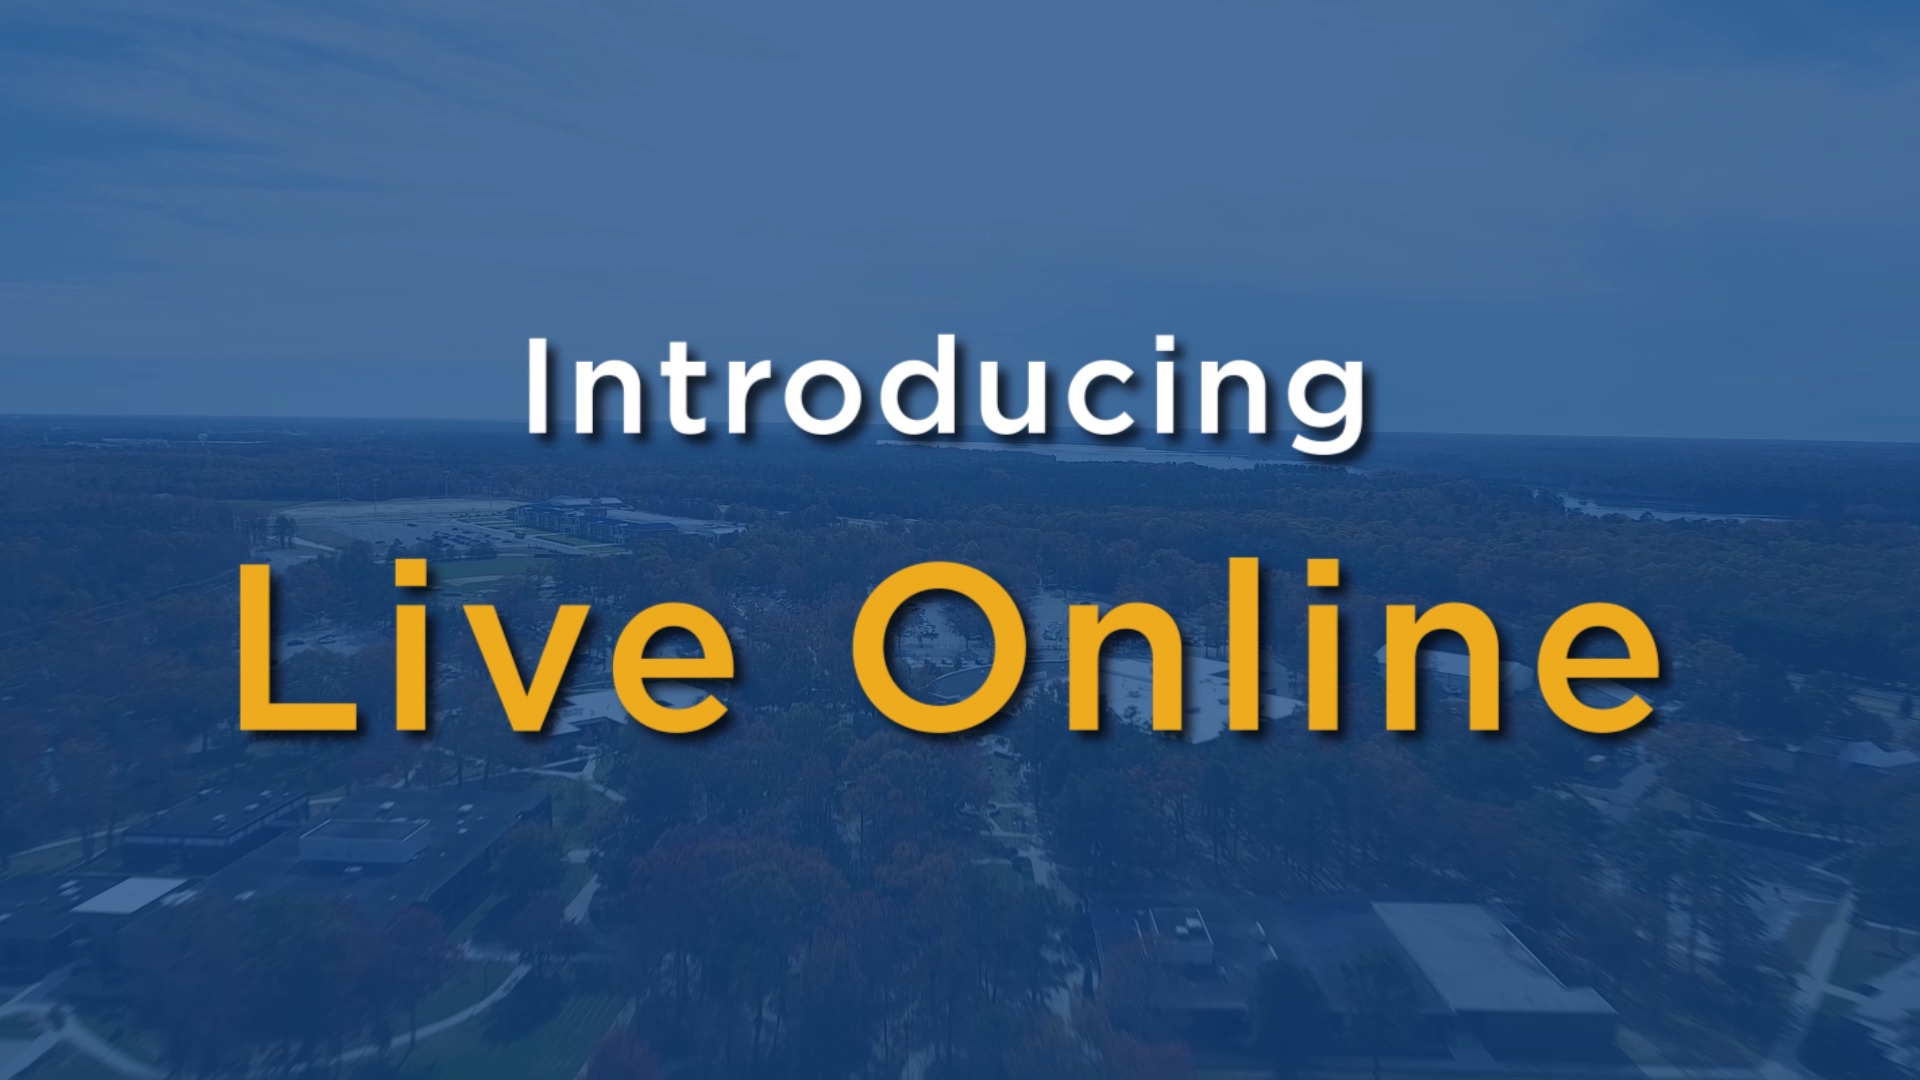 Introducing Live Online